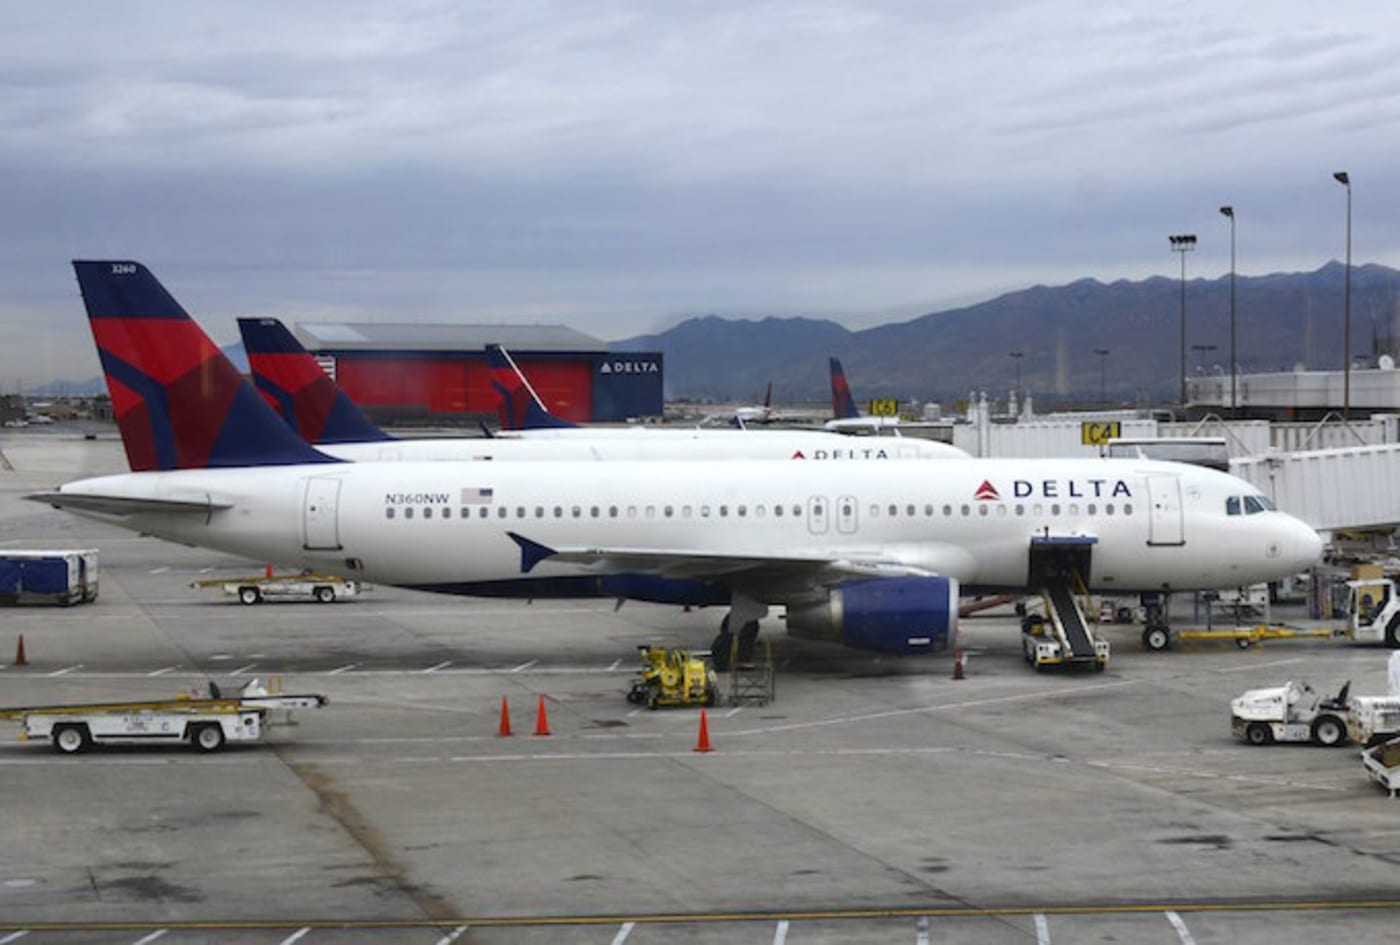 Delta airplanes at airport